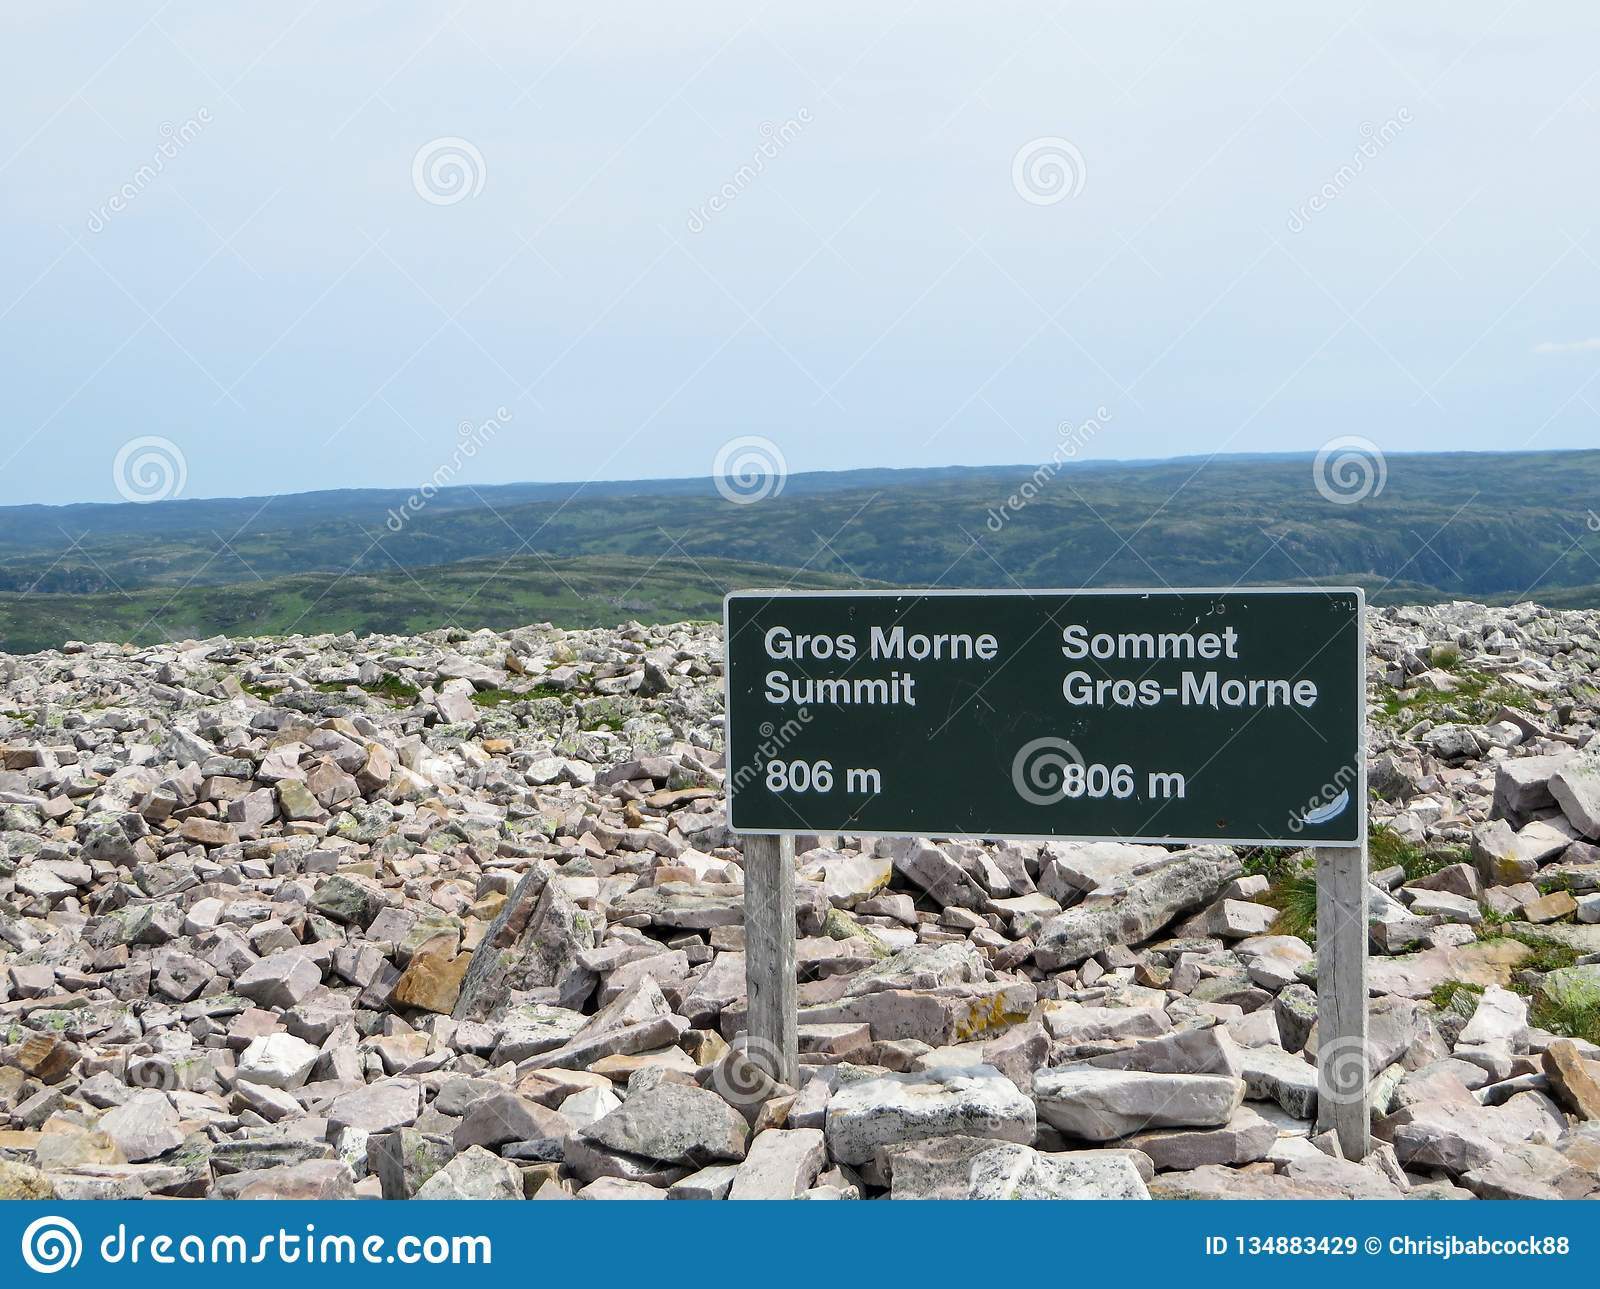 The sign at the summit of Gros Morne Mountain when hikers reach the summit.